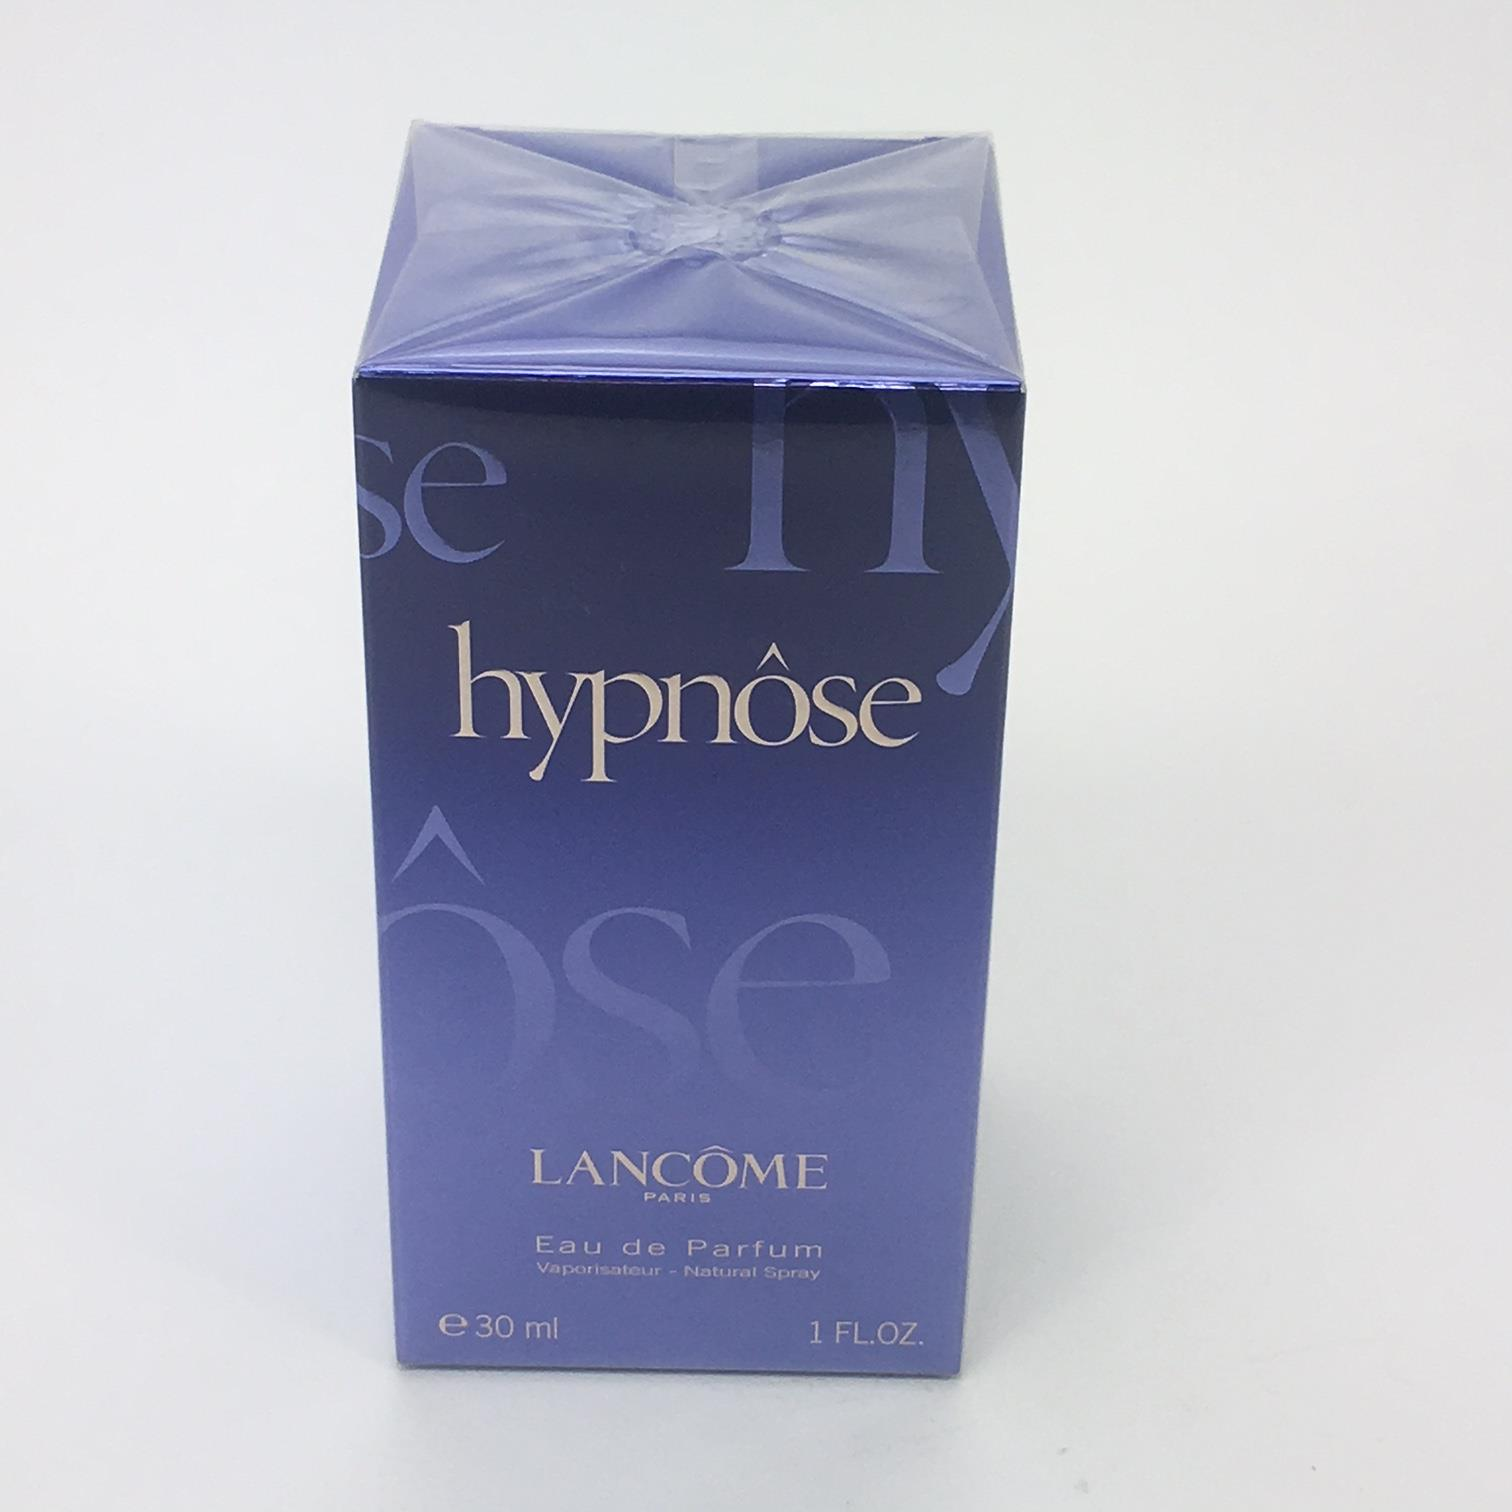 c53be4ddf4f HYPNOSE 30ml EAU DE PARFUM BY LANCOME - Hares & Graces